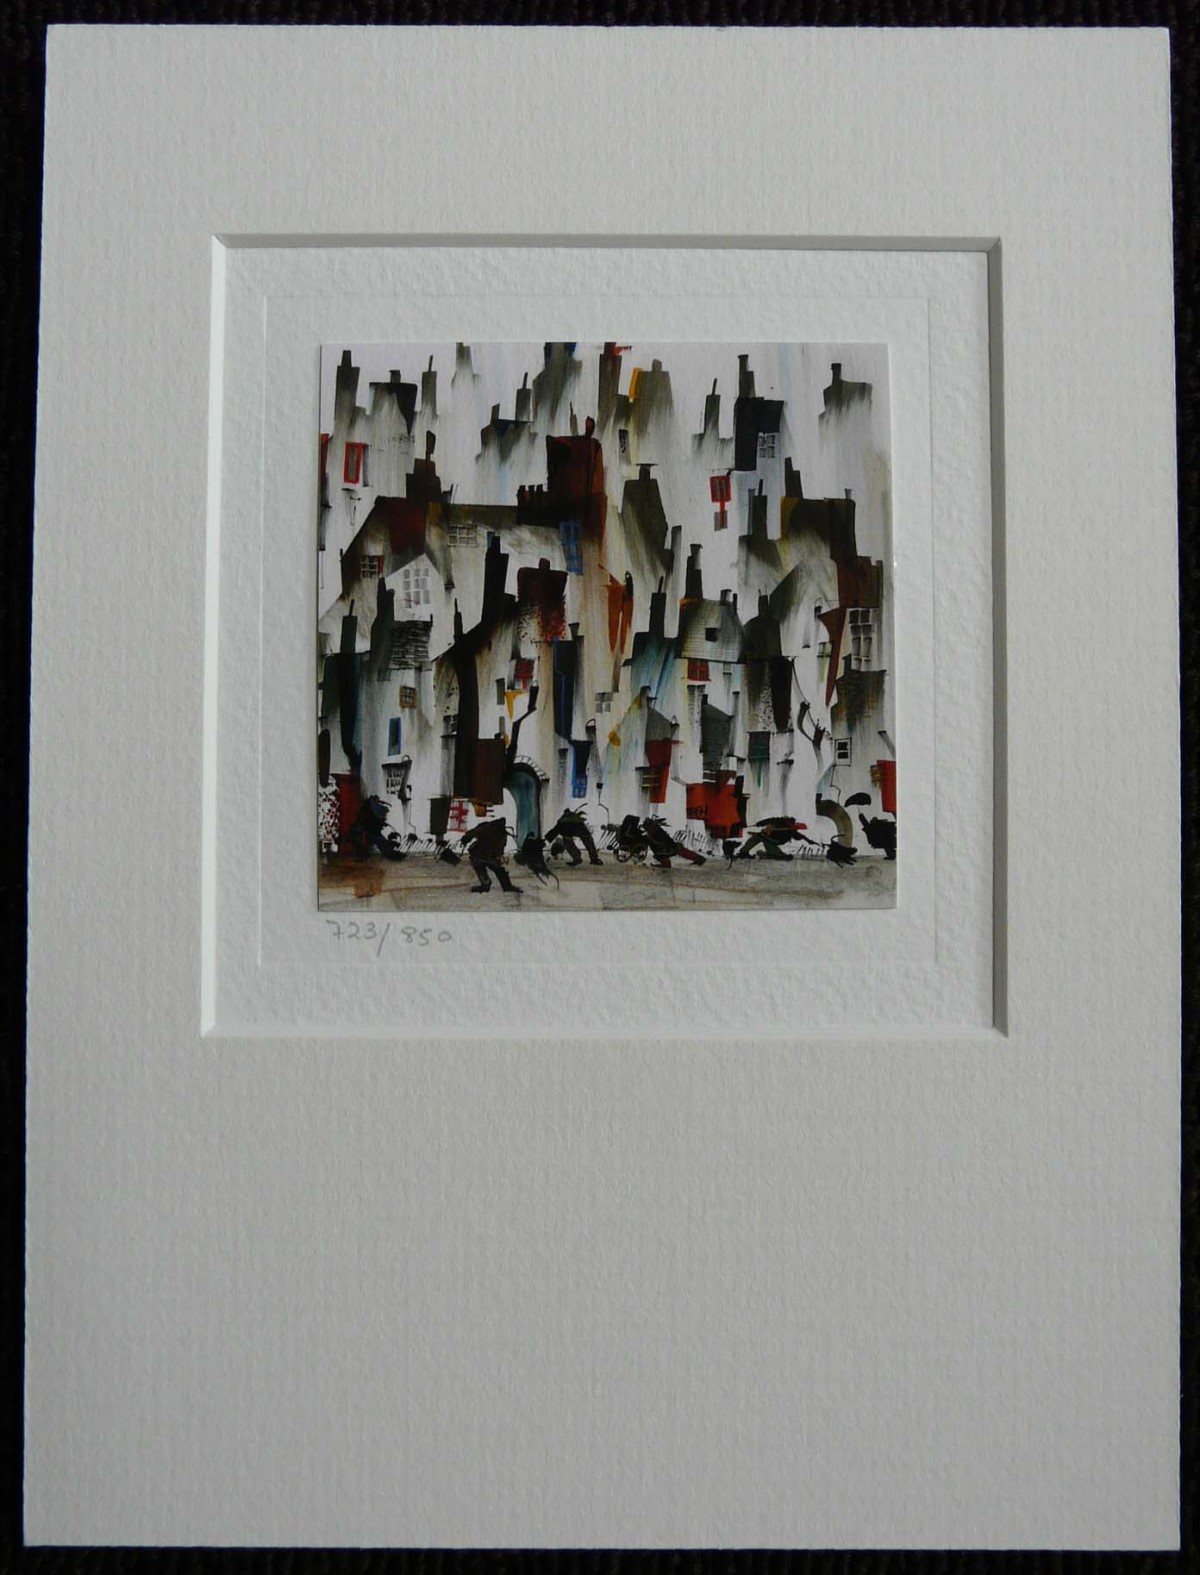 Limited Edition Card (58) by Sue Howells, Cards